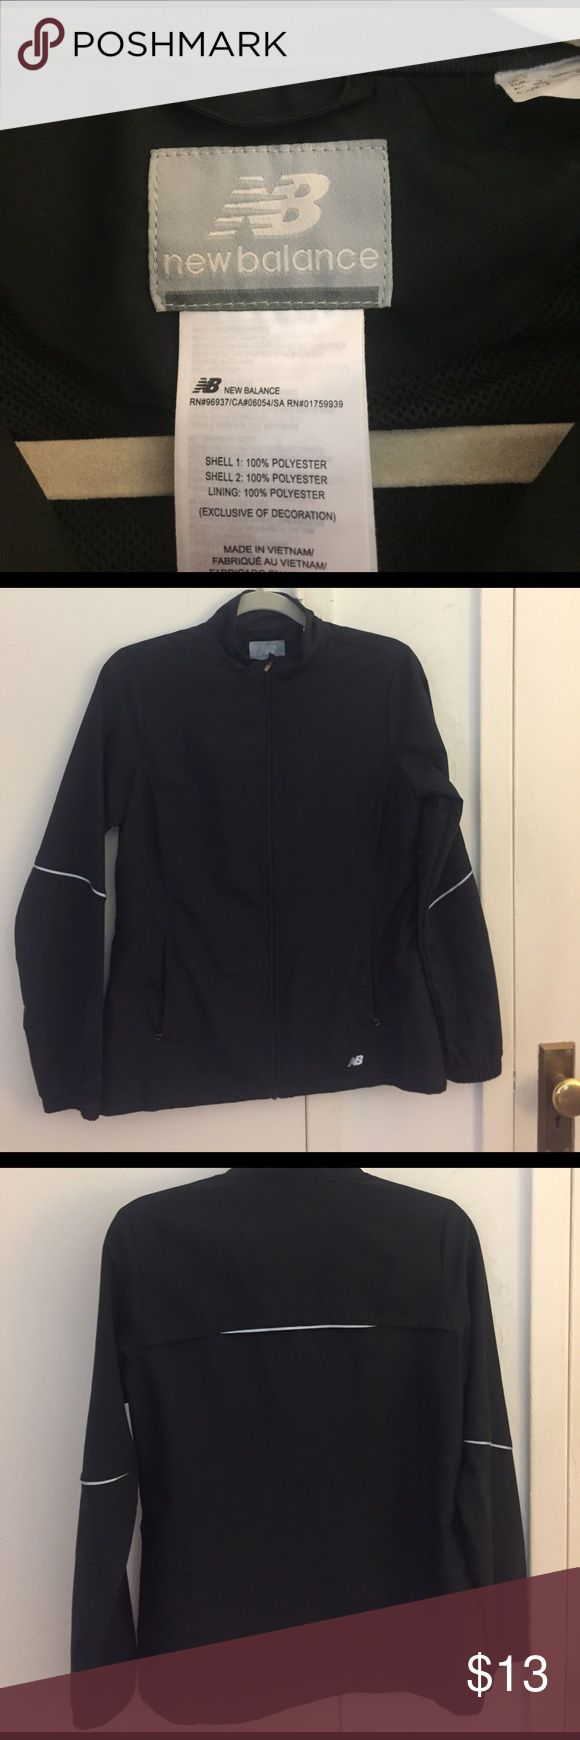 New balance black windbreaker. New balance windbreaker. Primarily black with reflective grey stripes on arm and back. Has two side zippered pockets and air vent in the back. Size small but btwn S-M. New Balance Jackets & Coats Utility Jackets